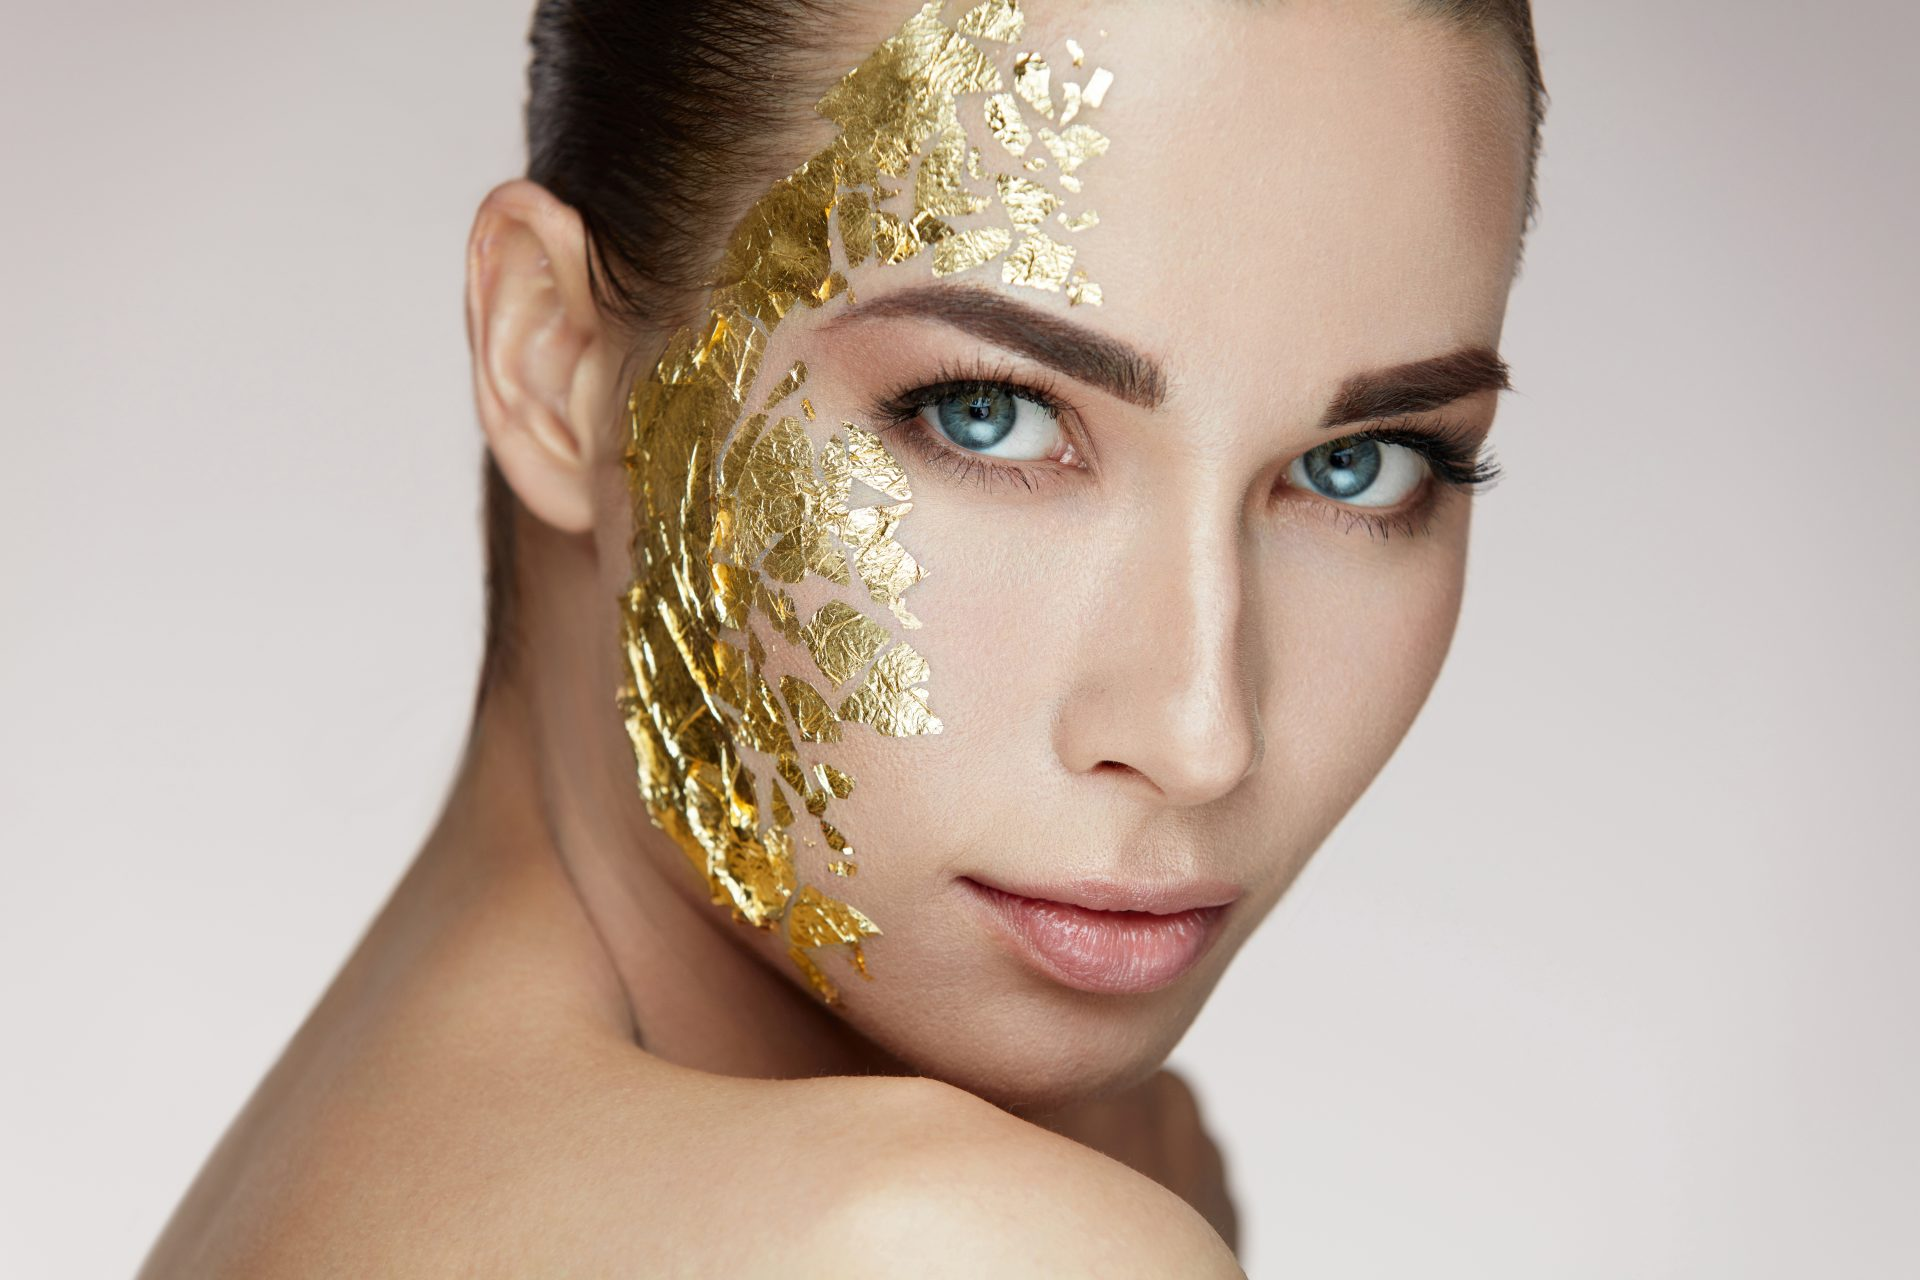 Keep Your Skin Looking Youthful And Vibrant With Prp